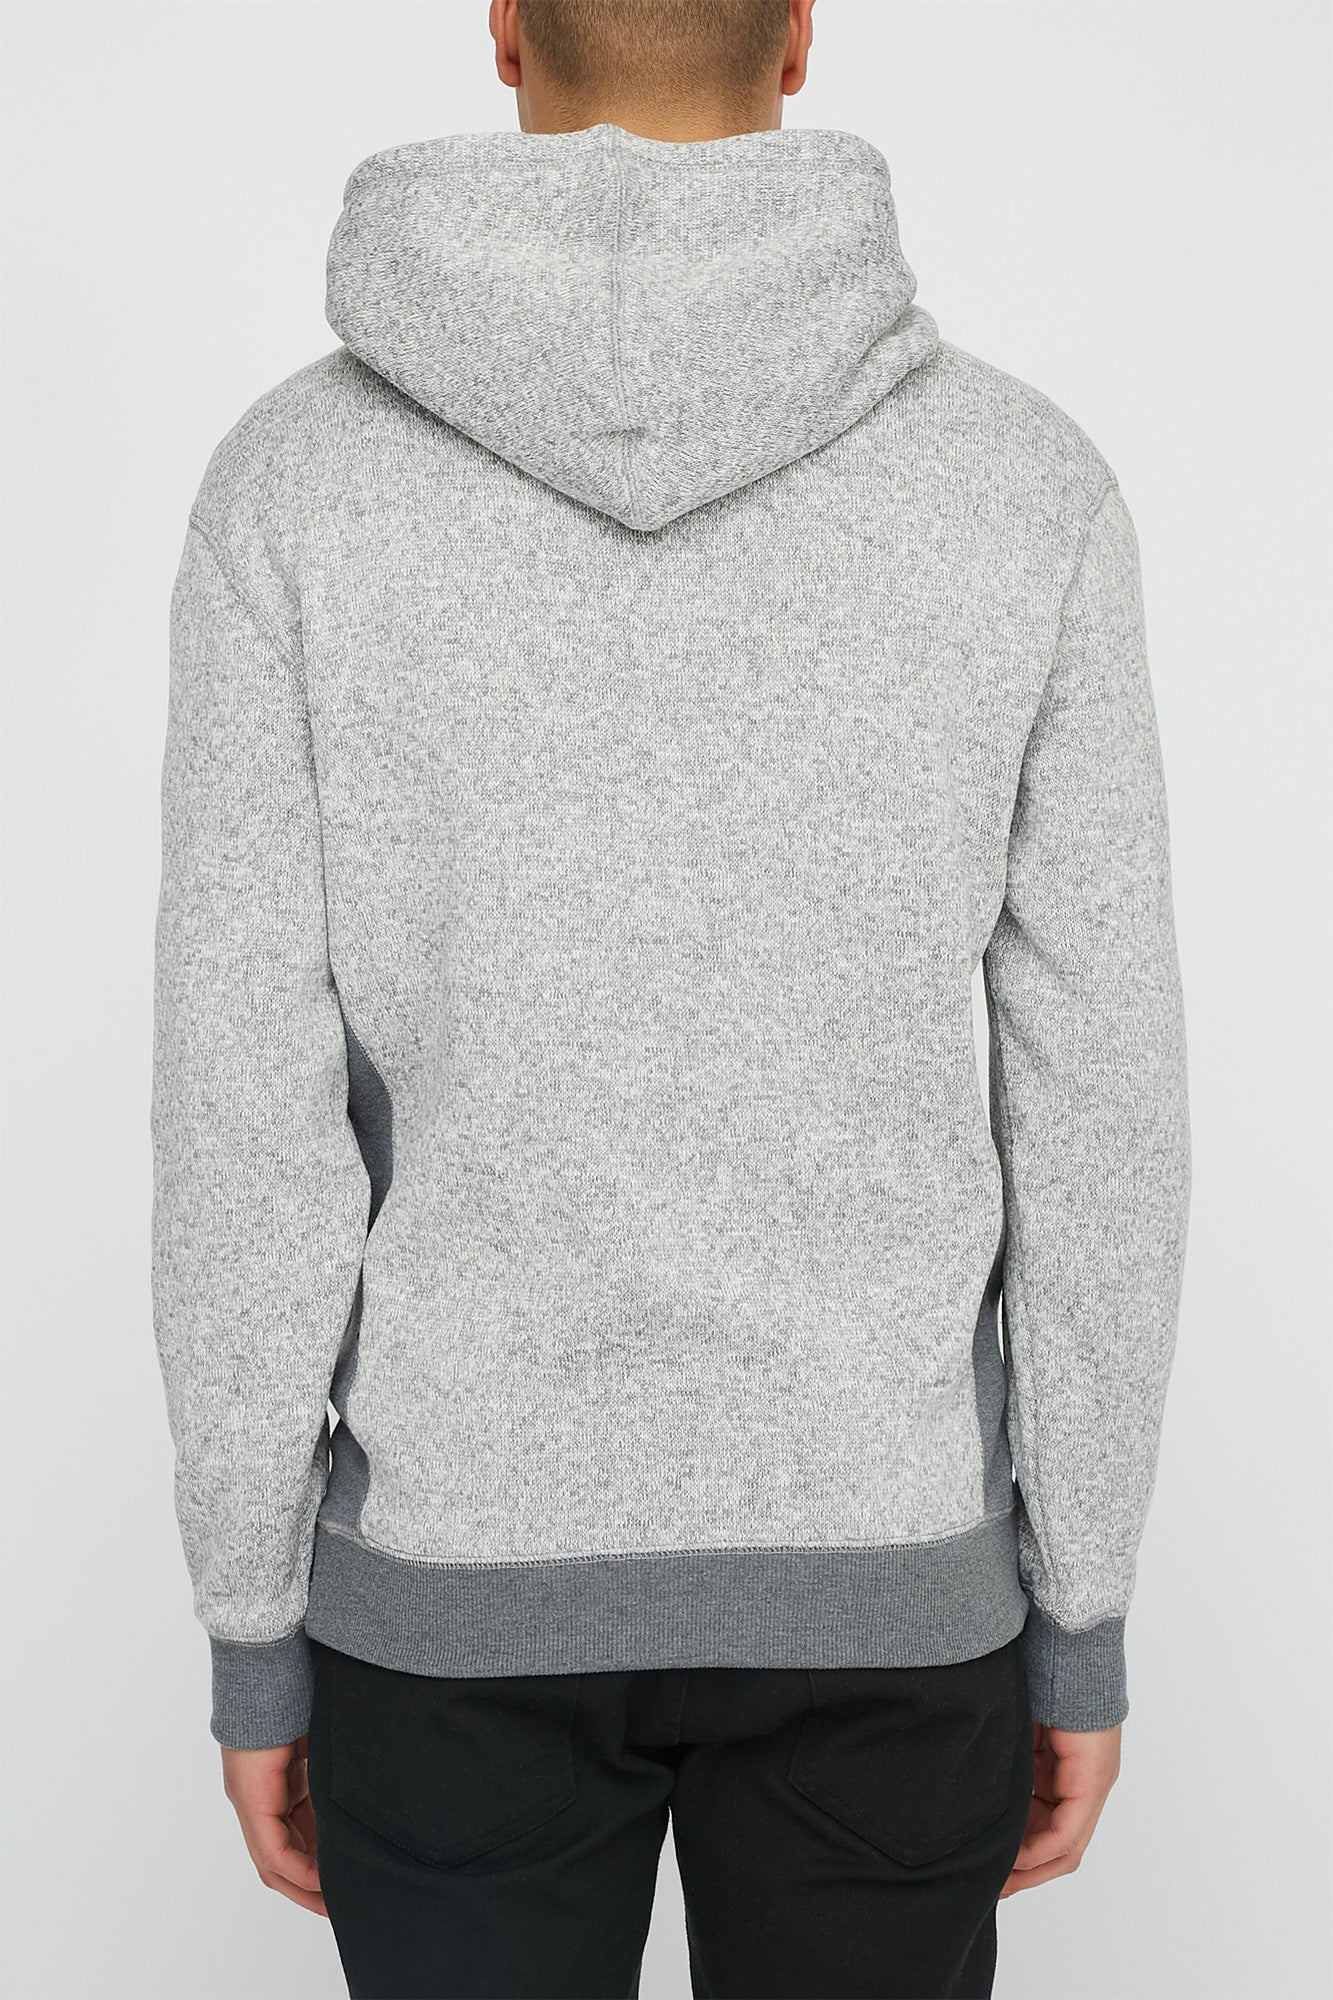 West49 Mens Fleece Hoodie